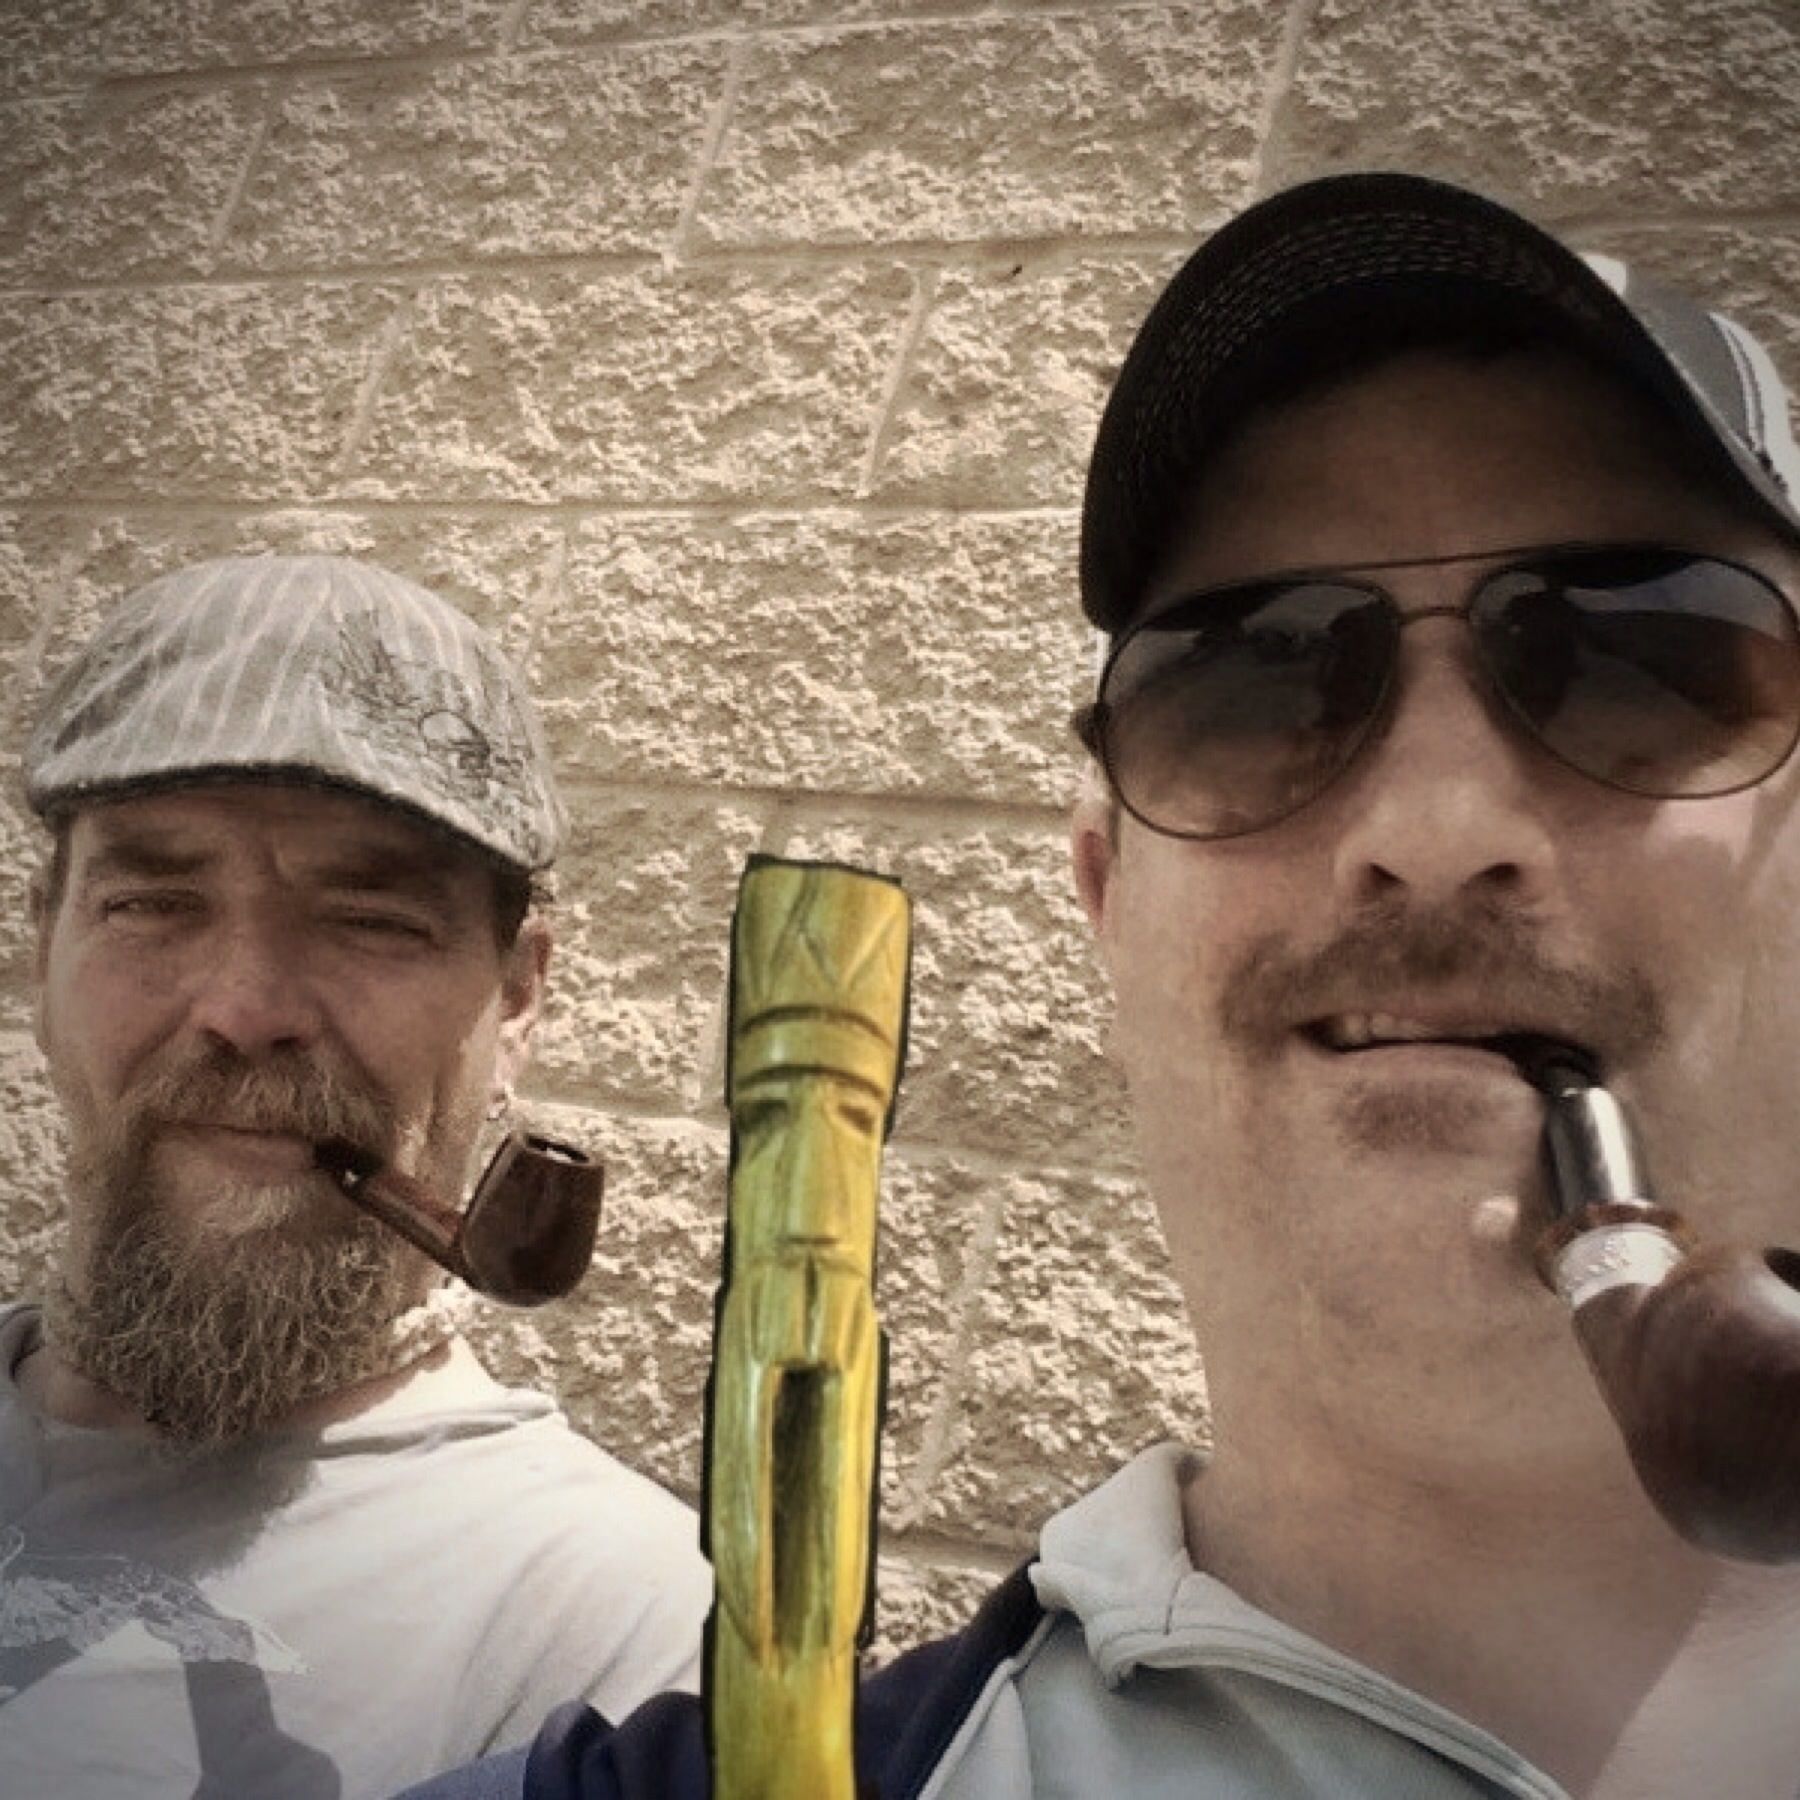 Me and The smoking pipeliner and Blue Collar piper